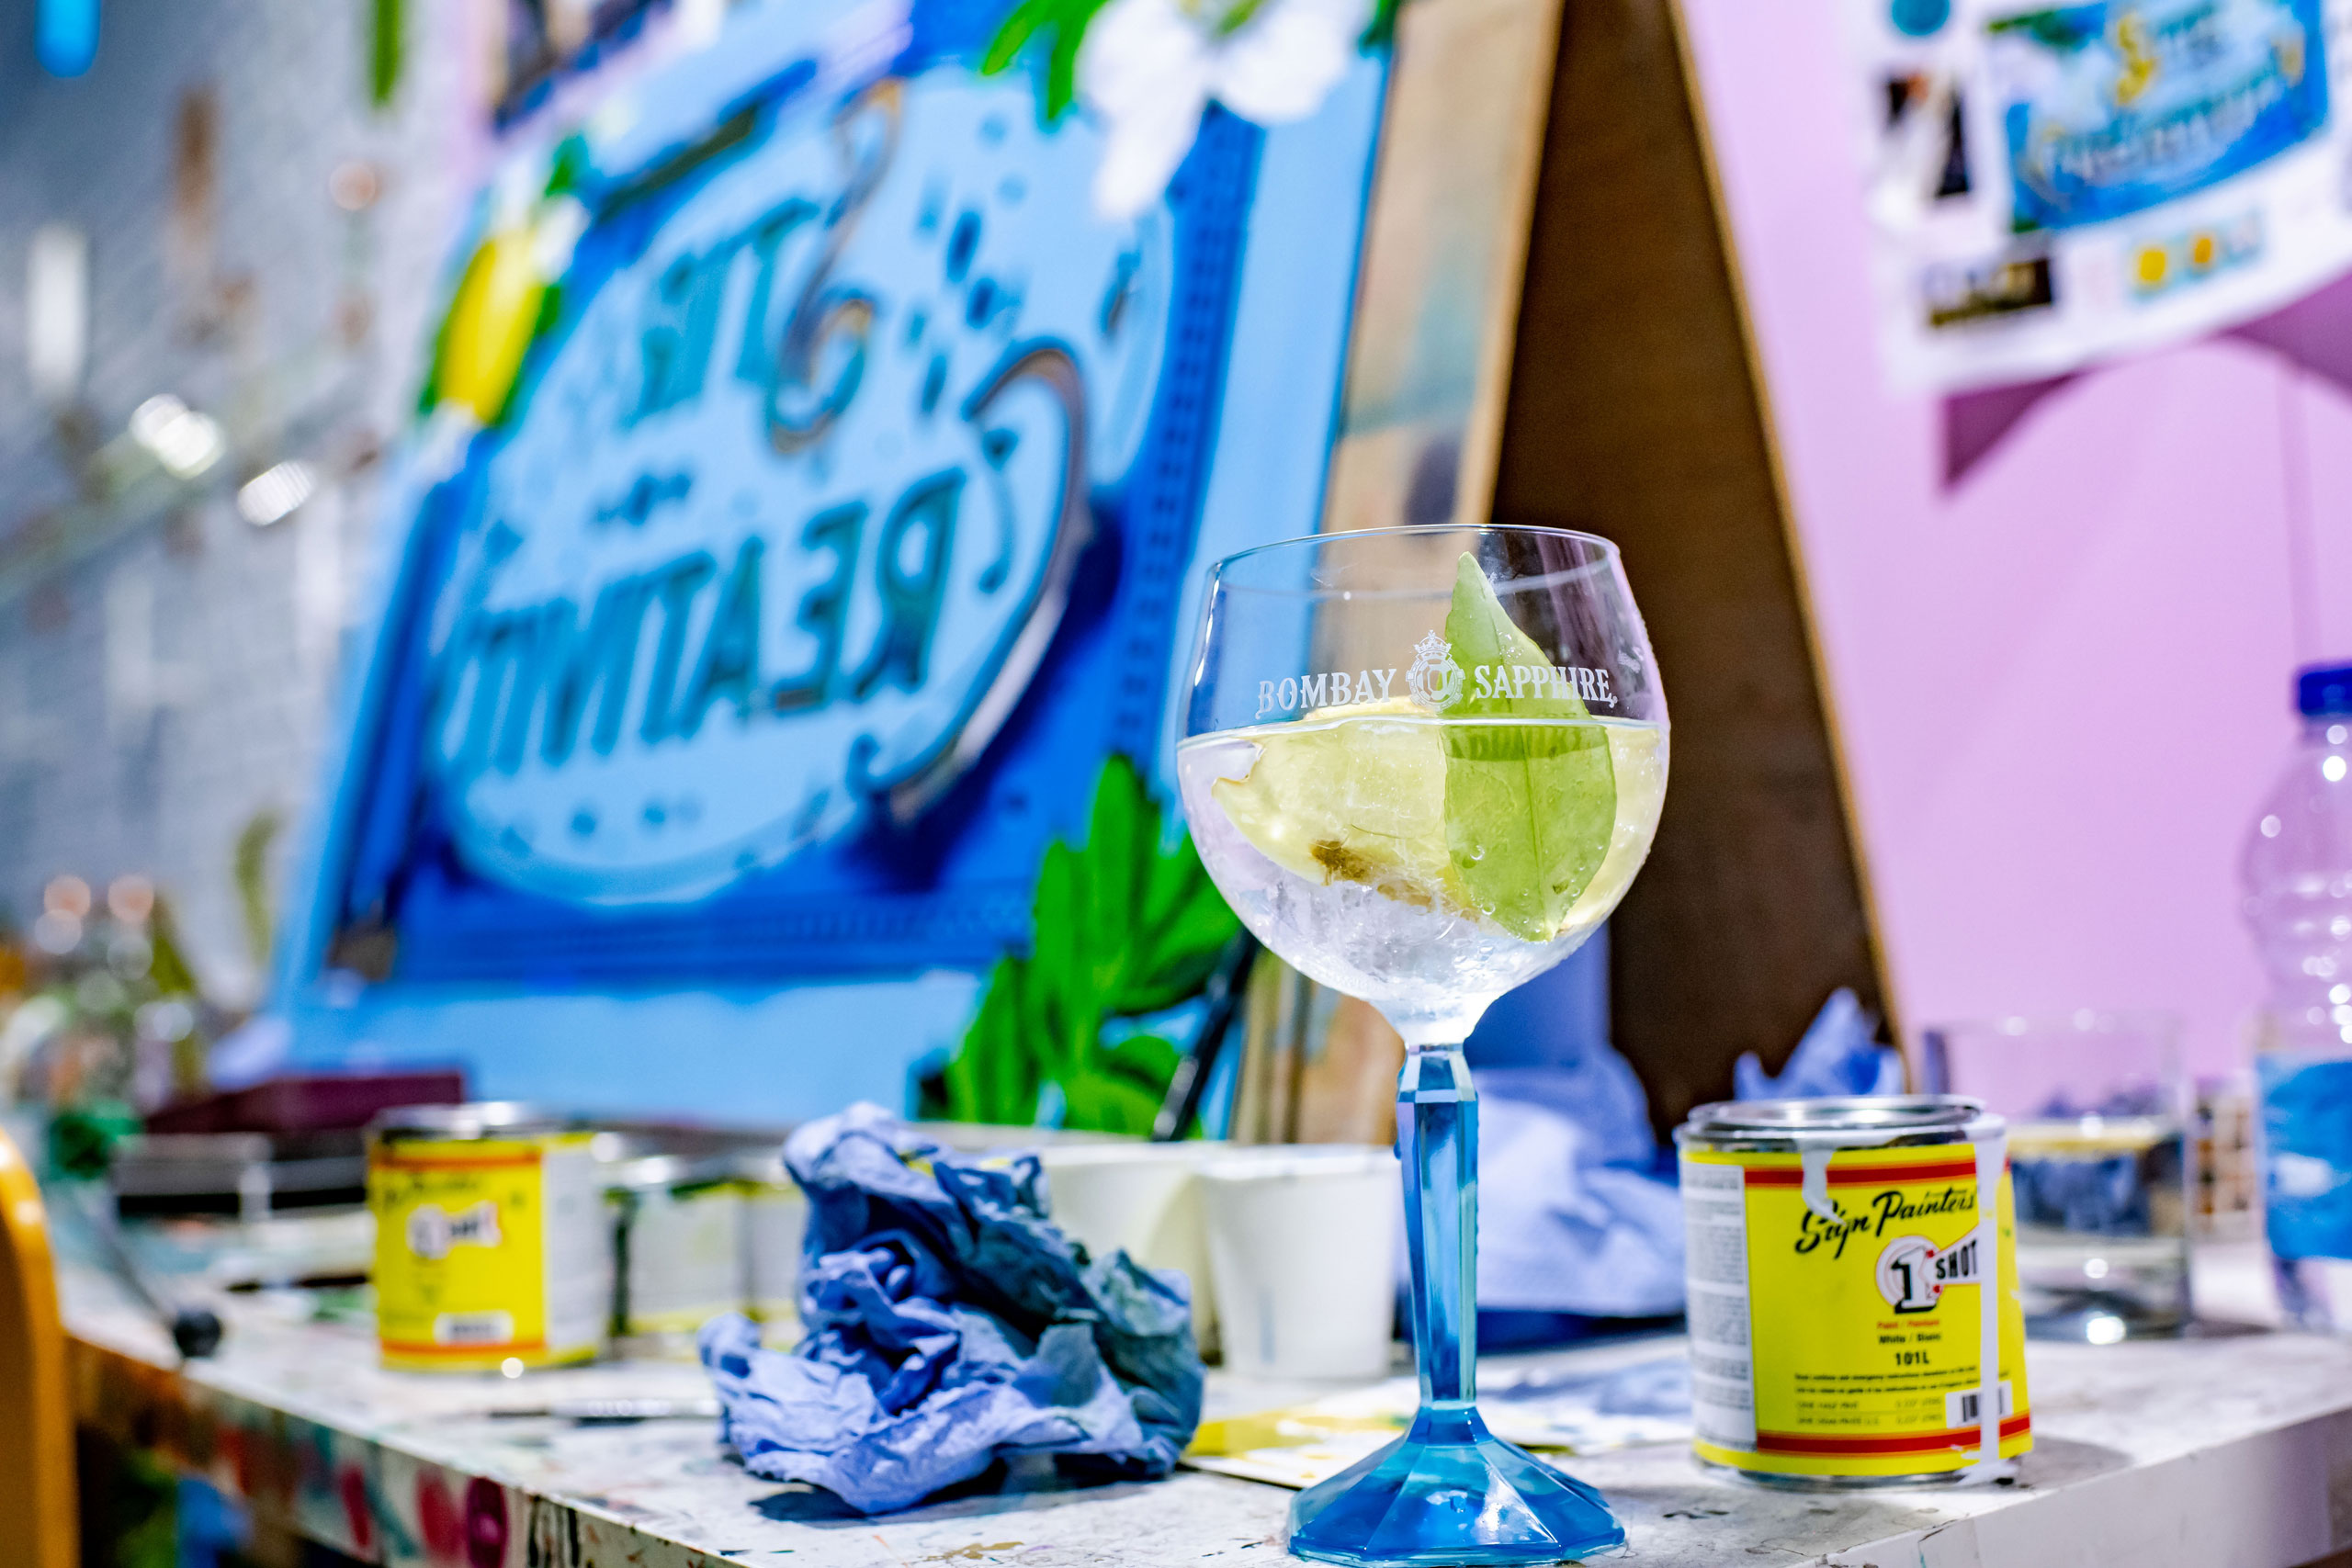 CANVAS event by Bombay Sapphire, London, July 2018. Installattion view by Elias Joidos © Yatzerland Ltd.